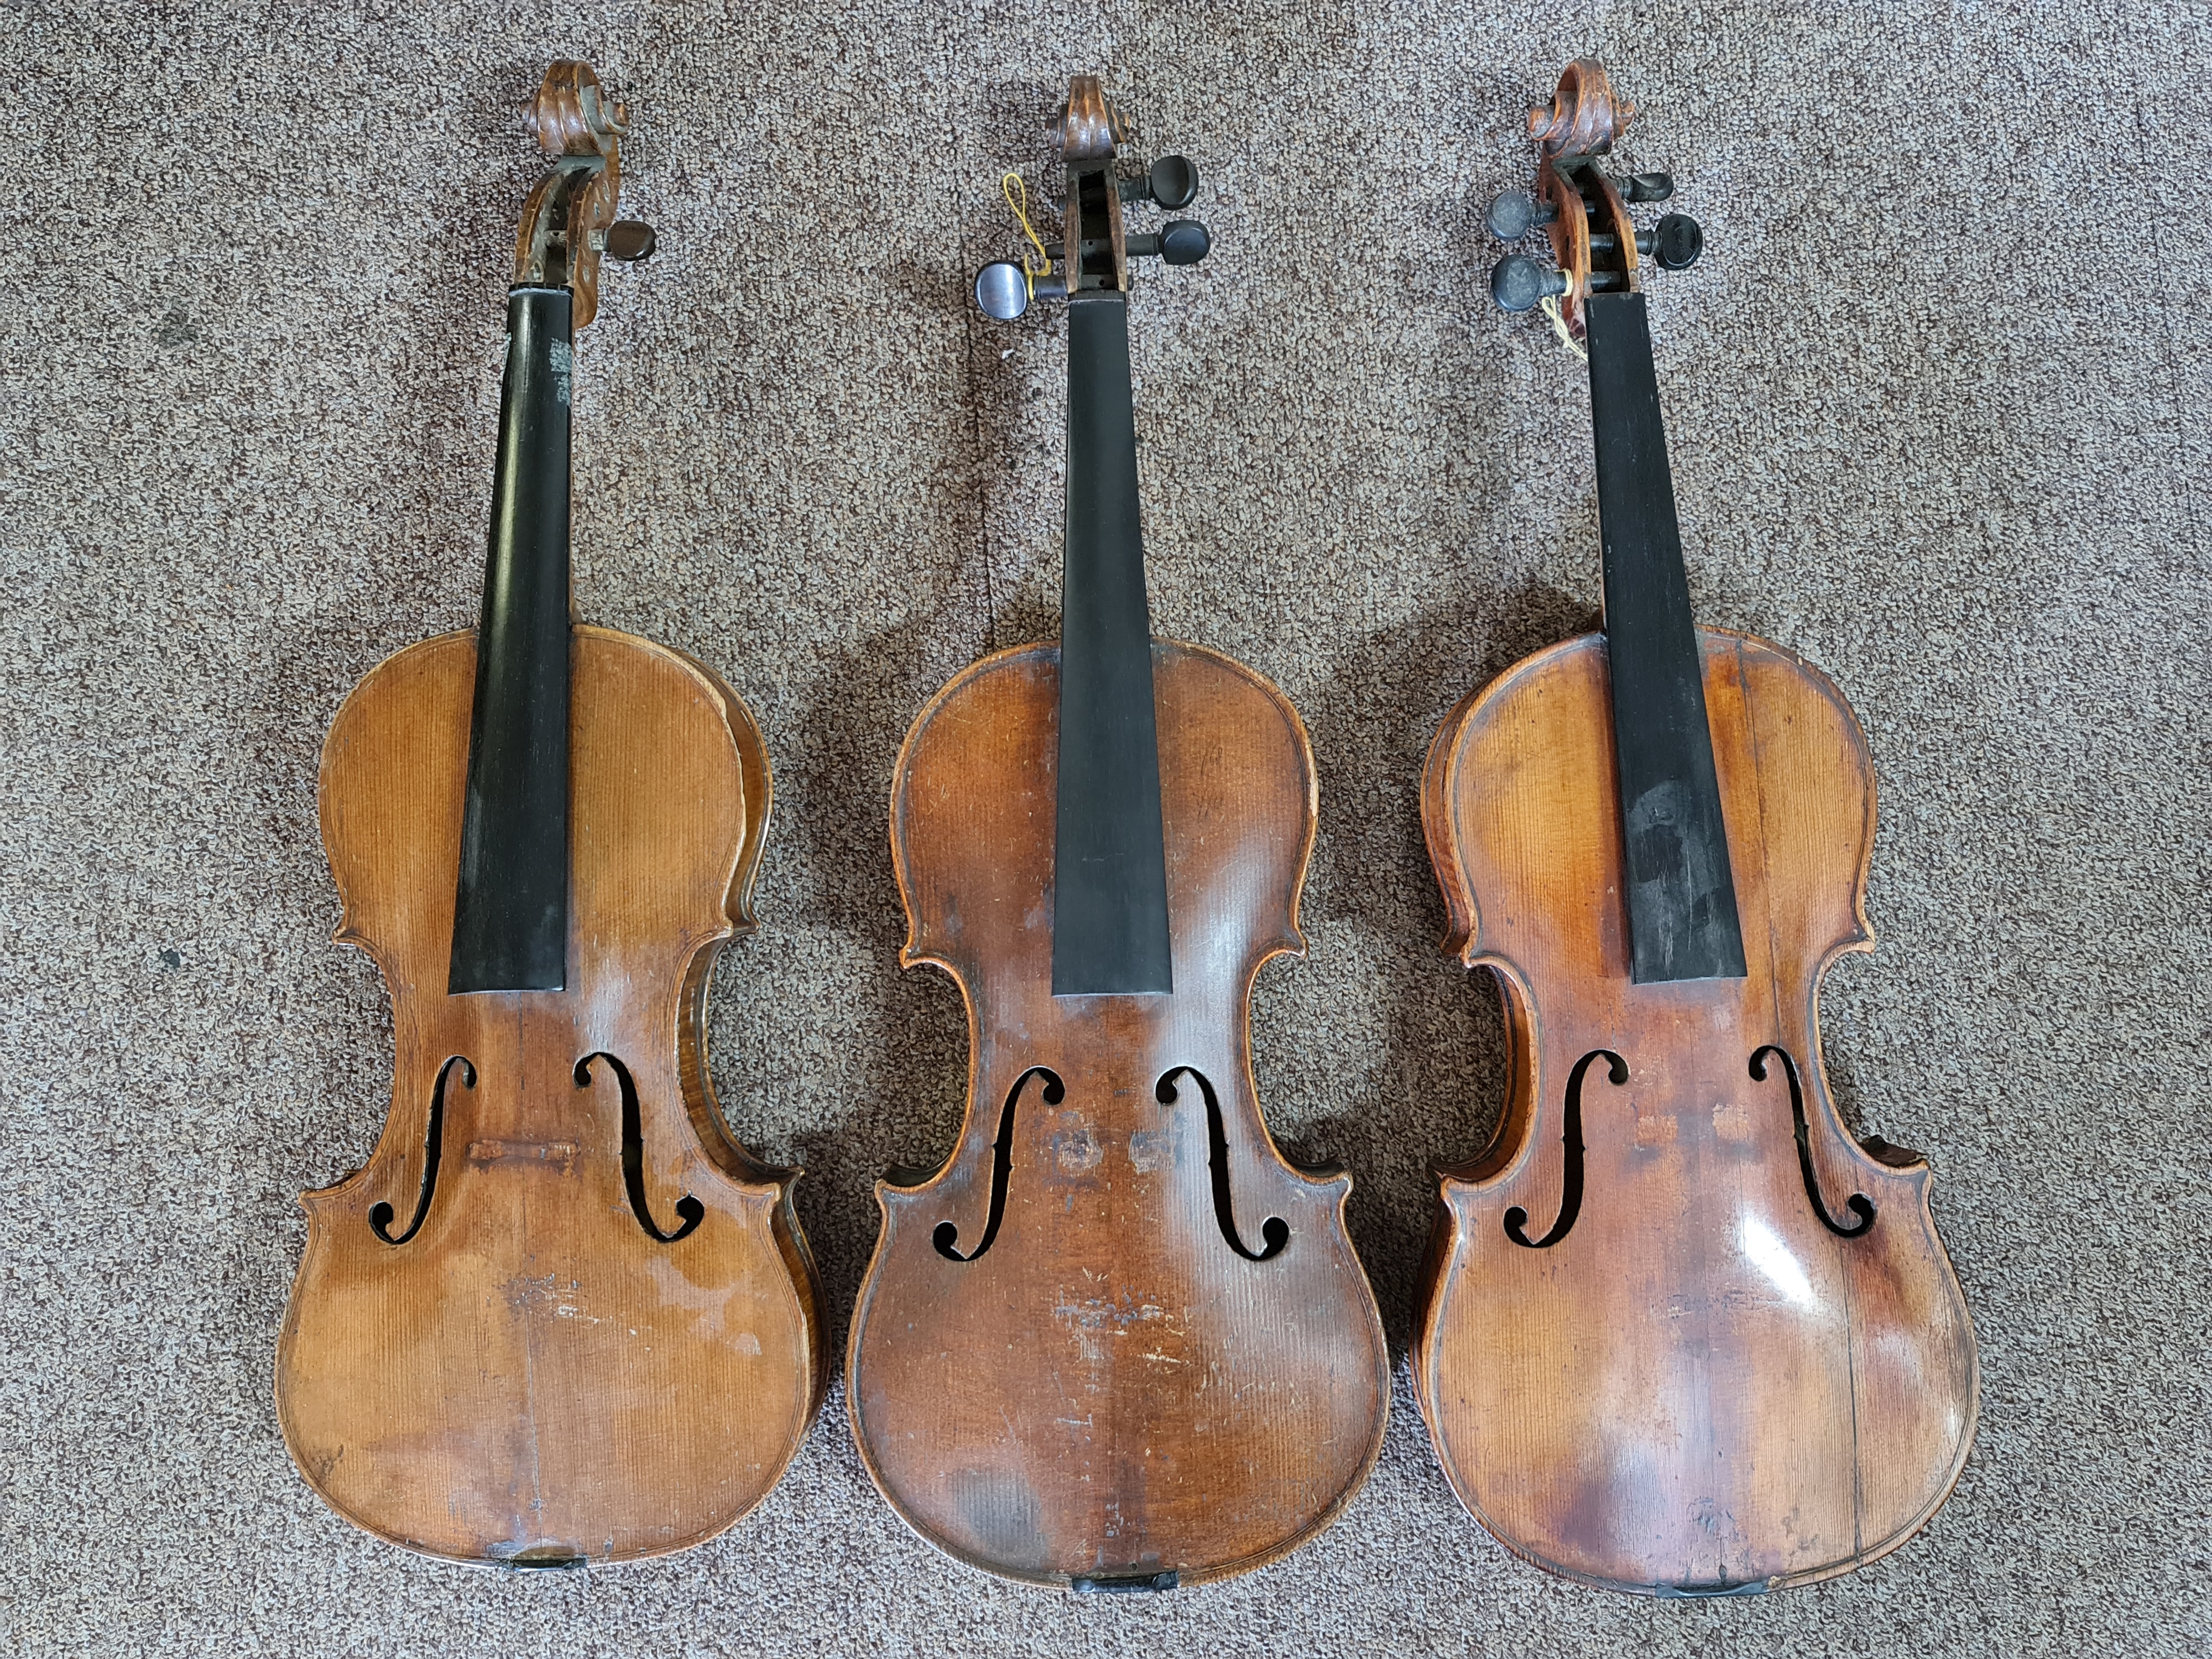 Three violins, one inscribed 'Hope' to back, one with front detached, no strings or cases.